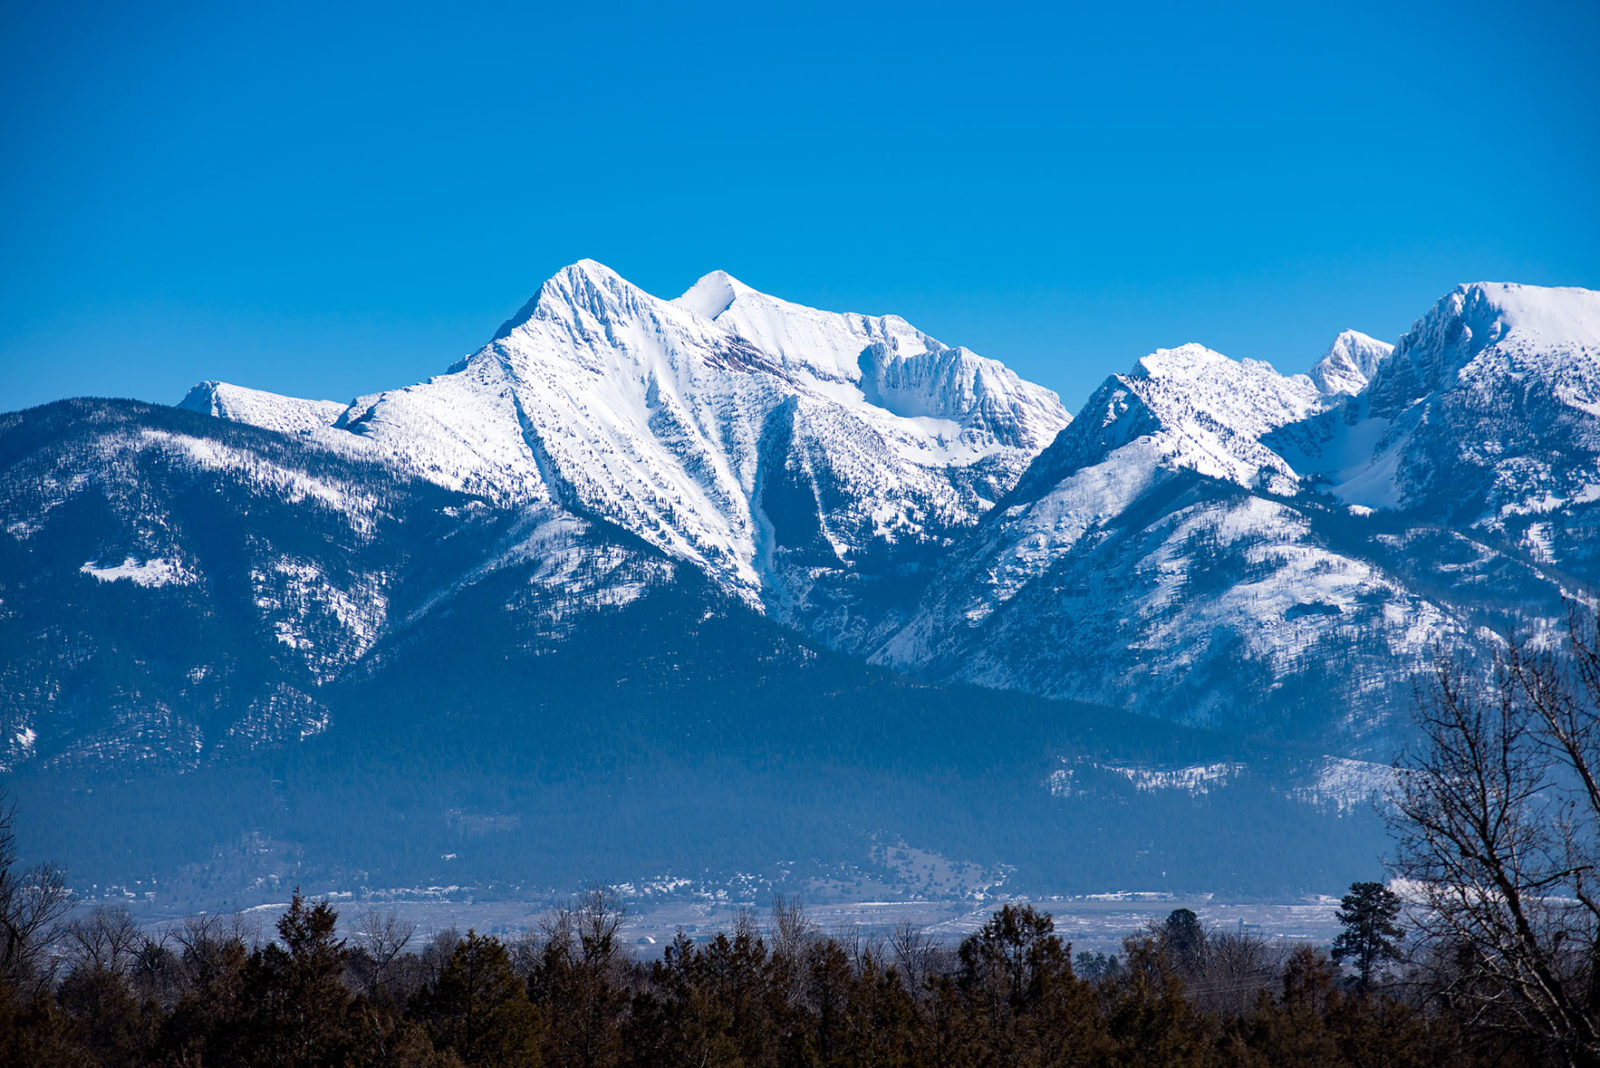 The Mission Mountains from the Bison Range